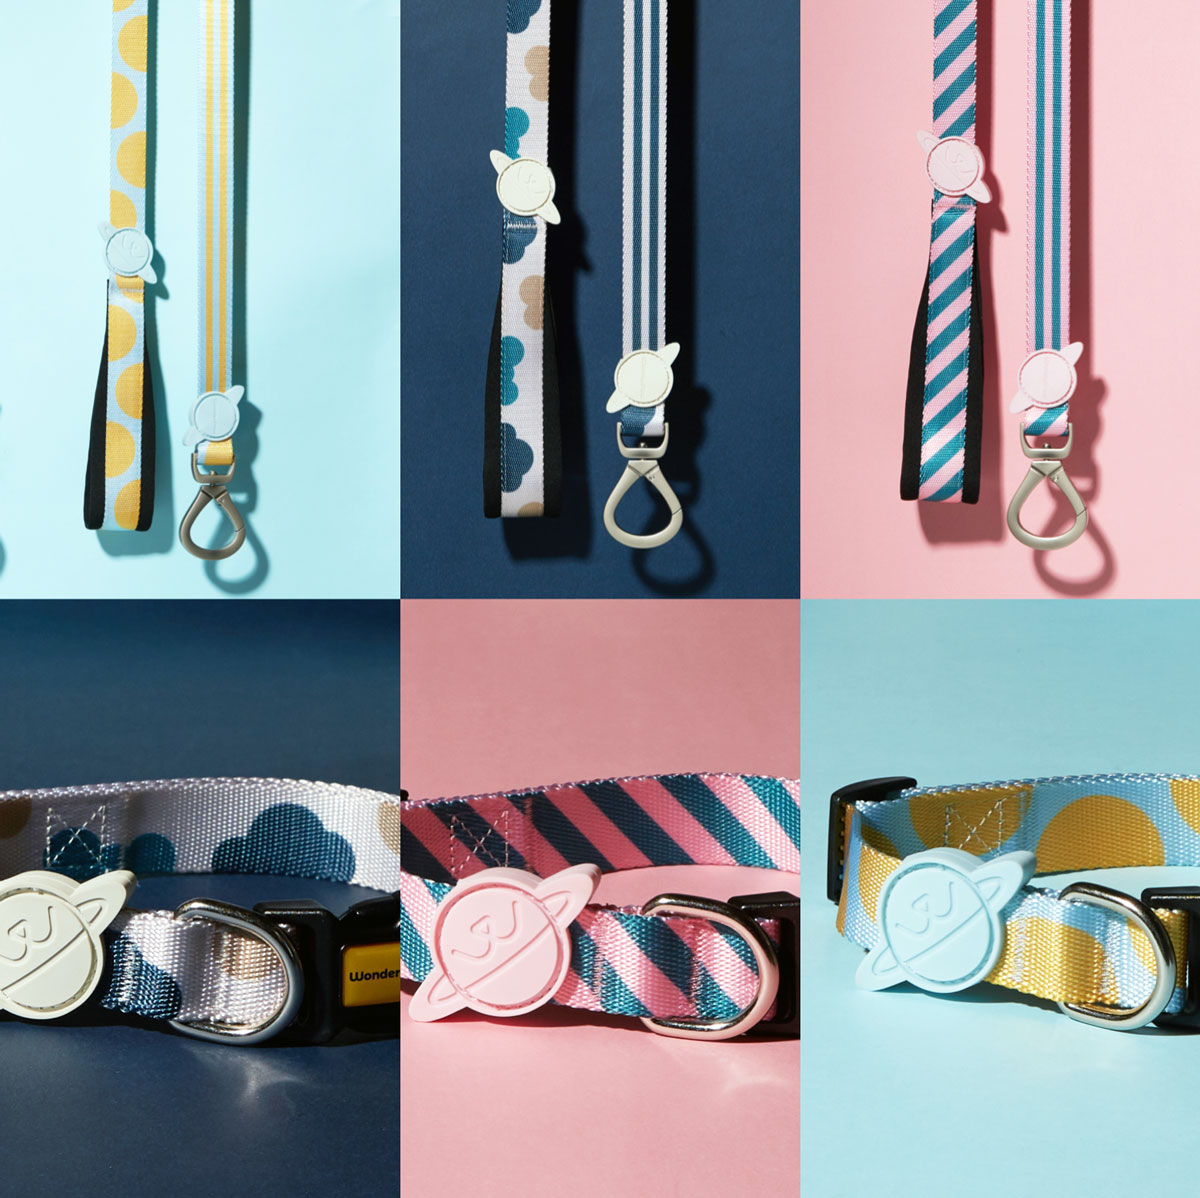 The 3 new collections of WonderPaw collar & leash set with added sizes are now available